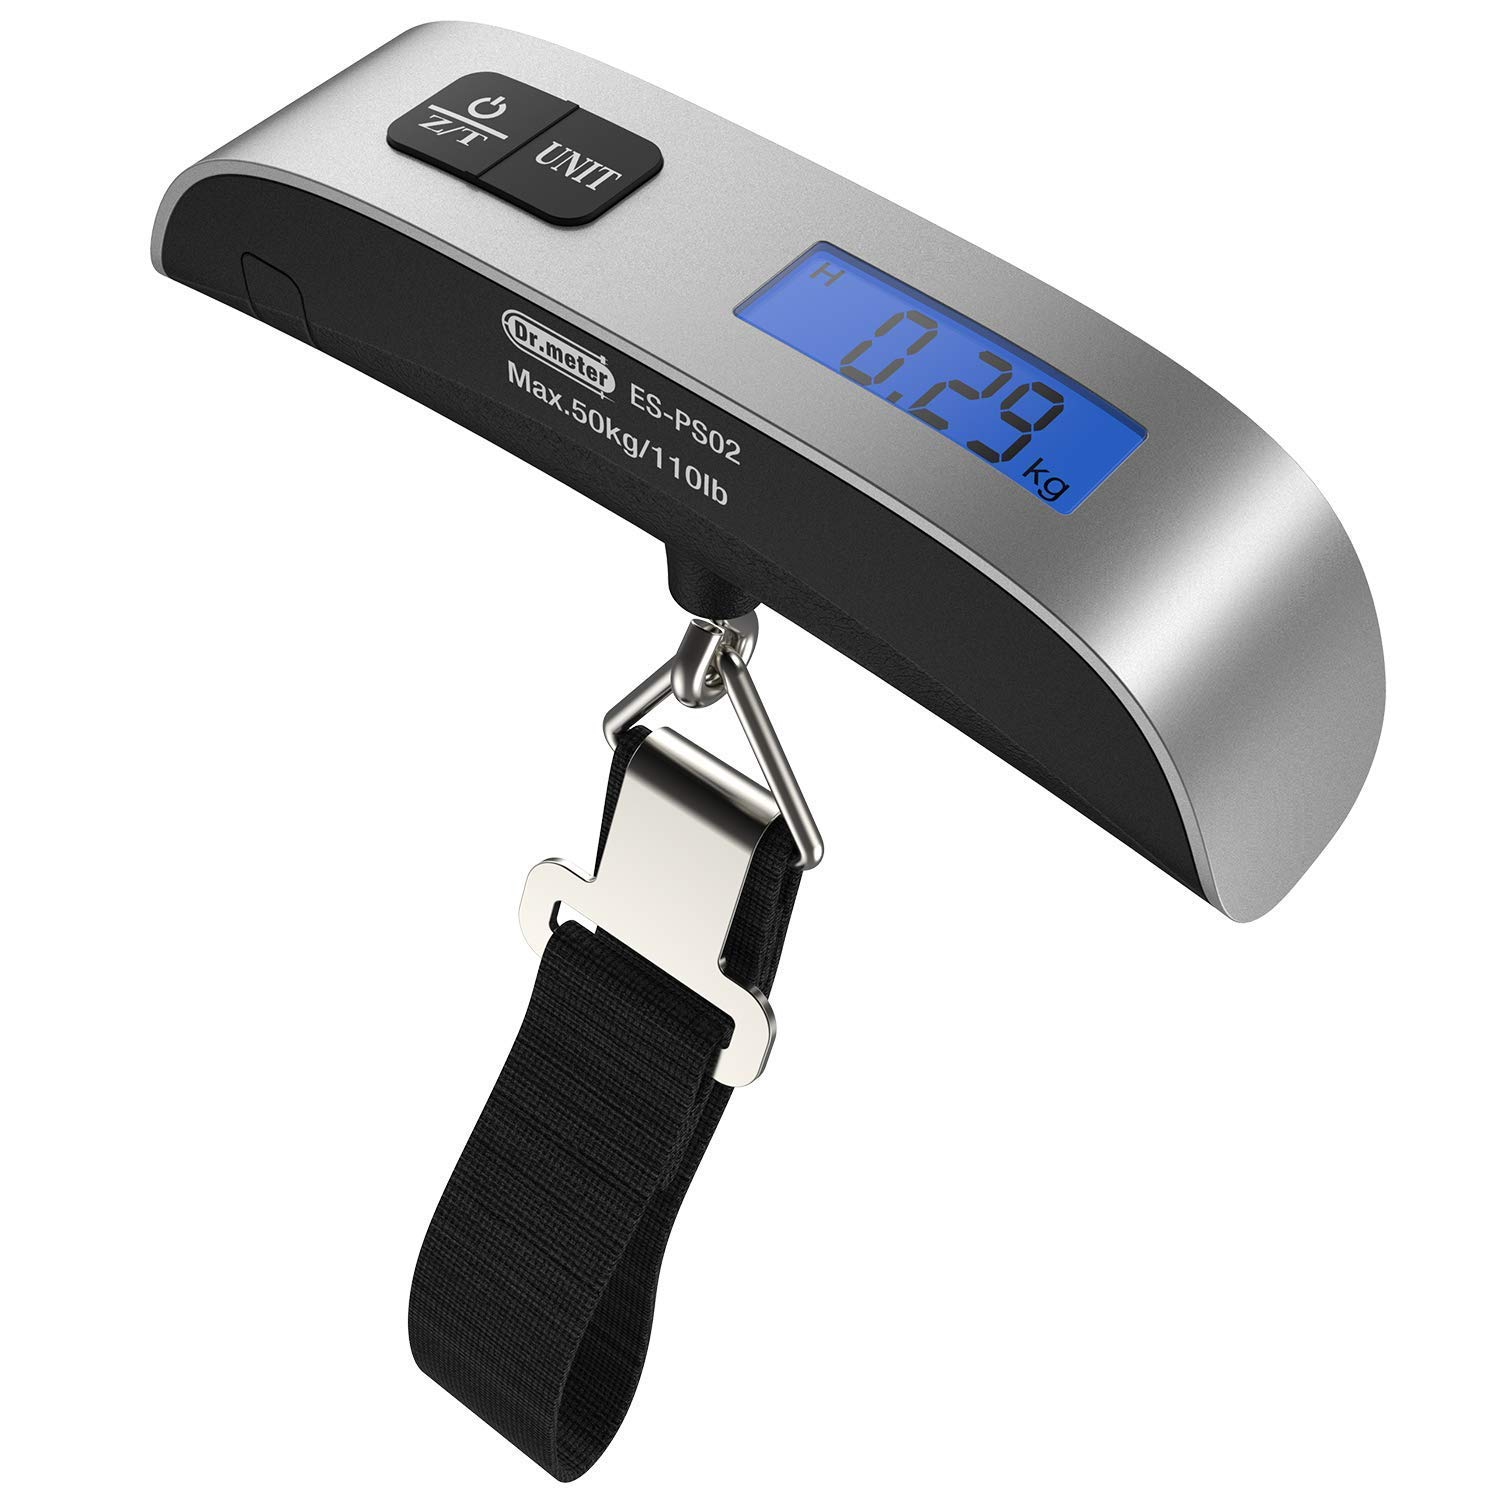 YTYC Backlight LCD Display Luggage Scale,110lb/50kg Electronic Balance Digital Postal Luggage Hanging Scale with Rubber Paint Handle,Temperature Sensor (Silver)